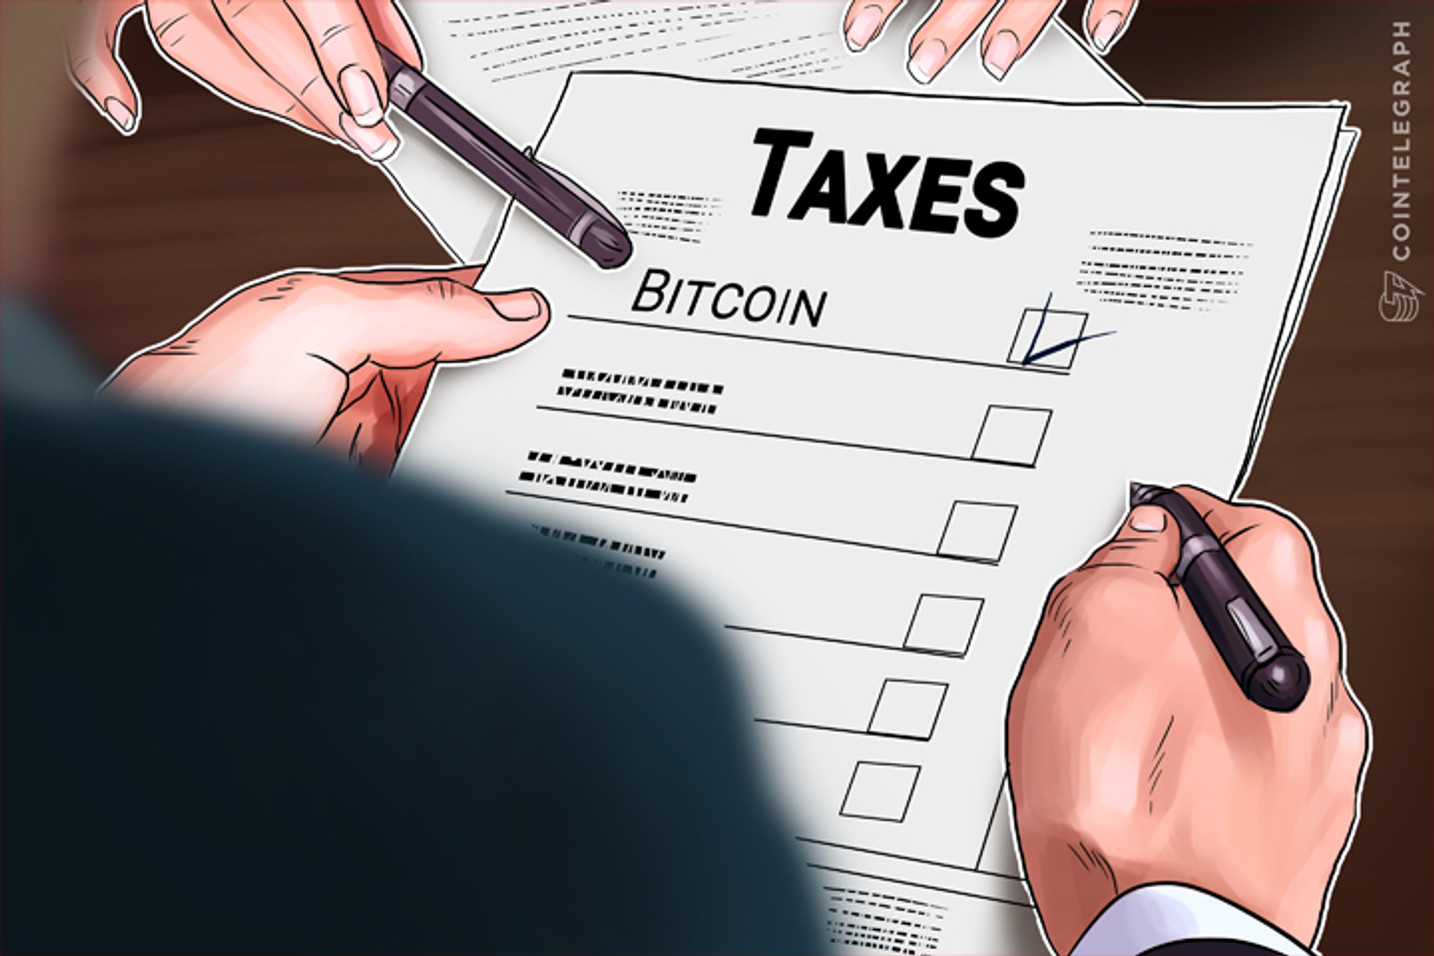 IRS Bitcoin Hunt Ramps Up, But Tax Amnesty Could Follow: Expert Blog